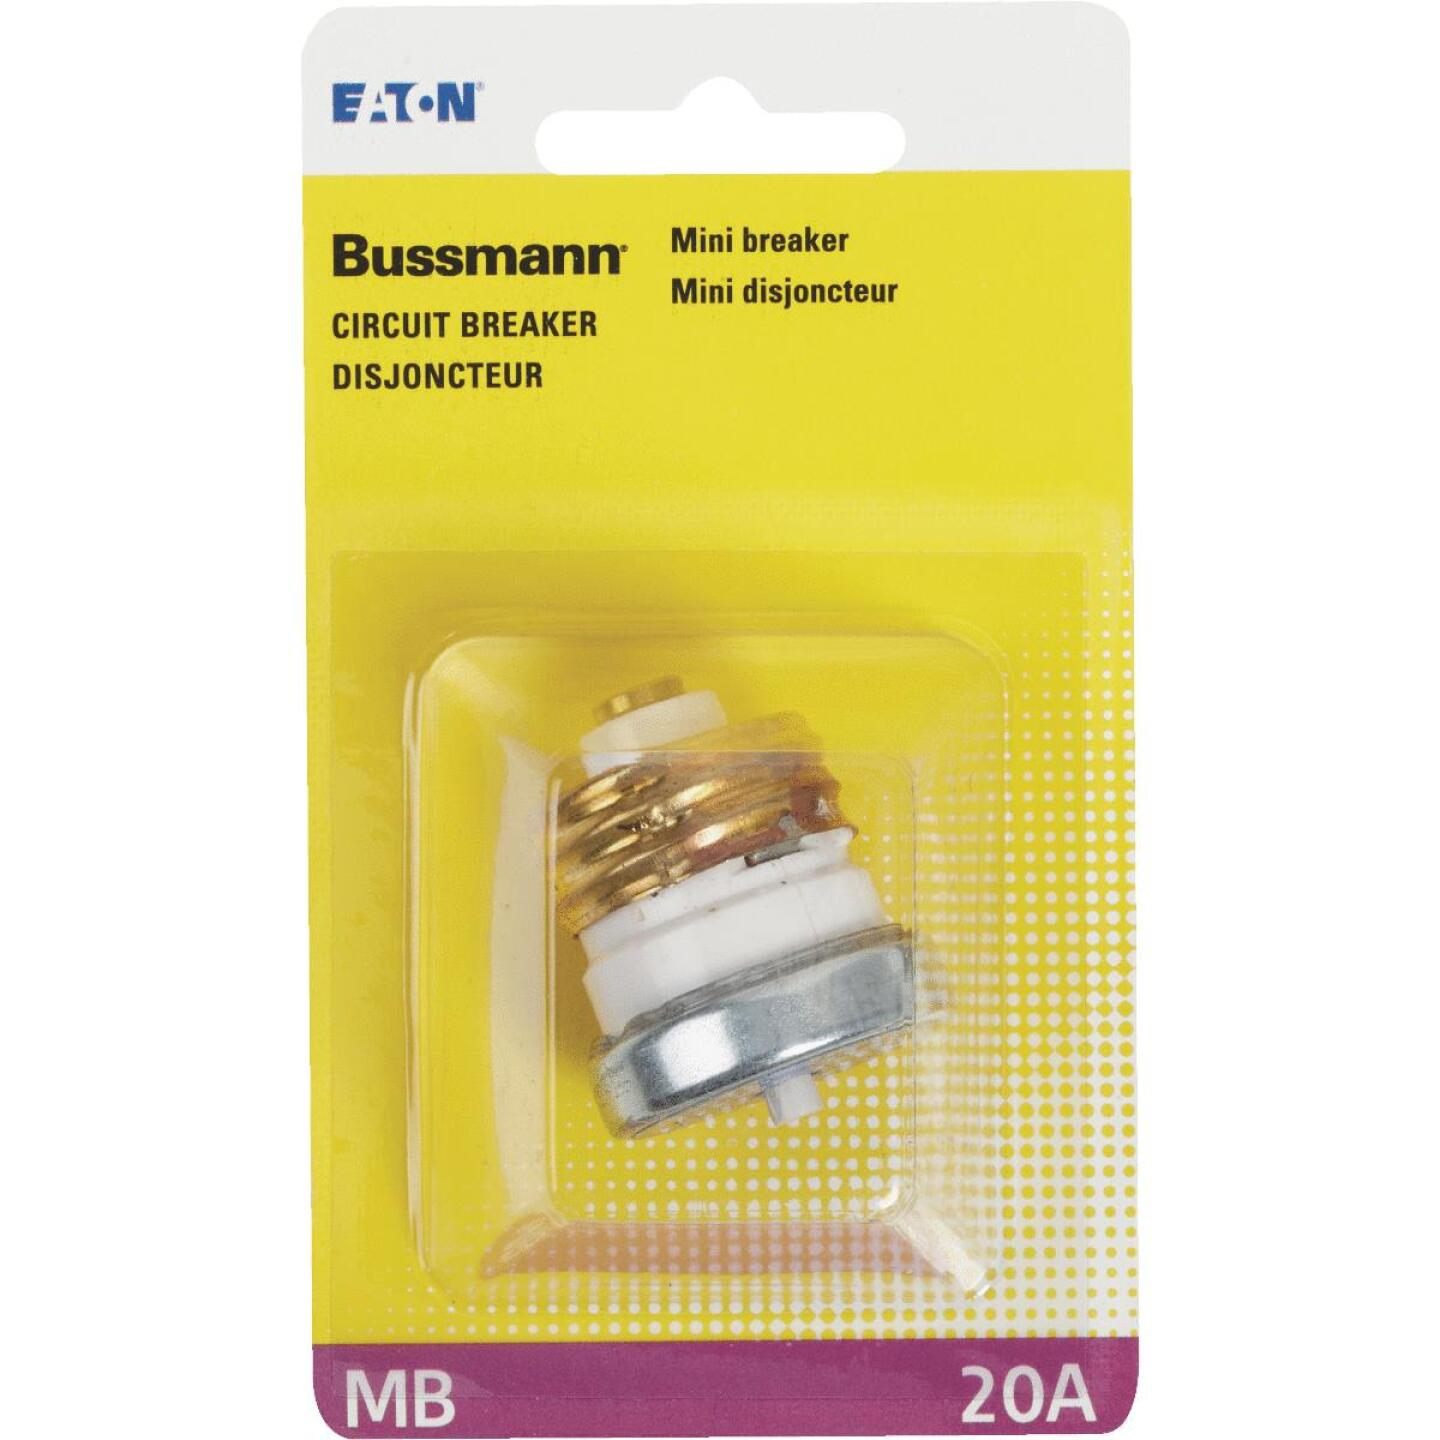 Bussmann 20A 125V Time-Delay Mini-Breaker Image 2